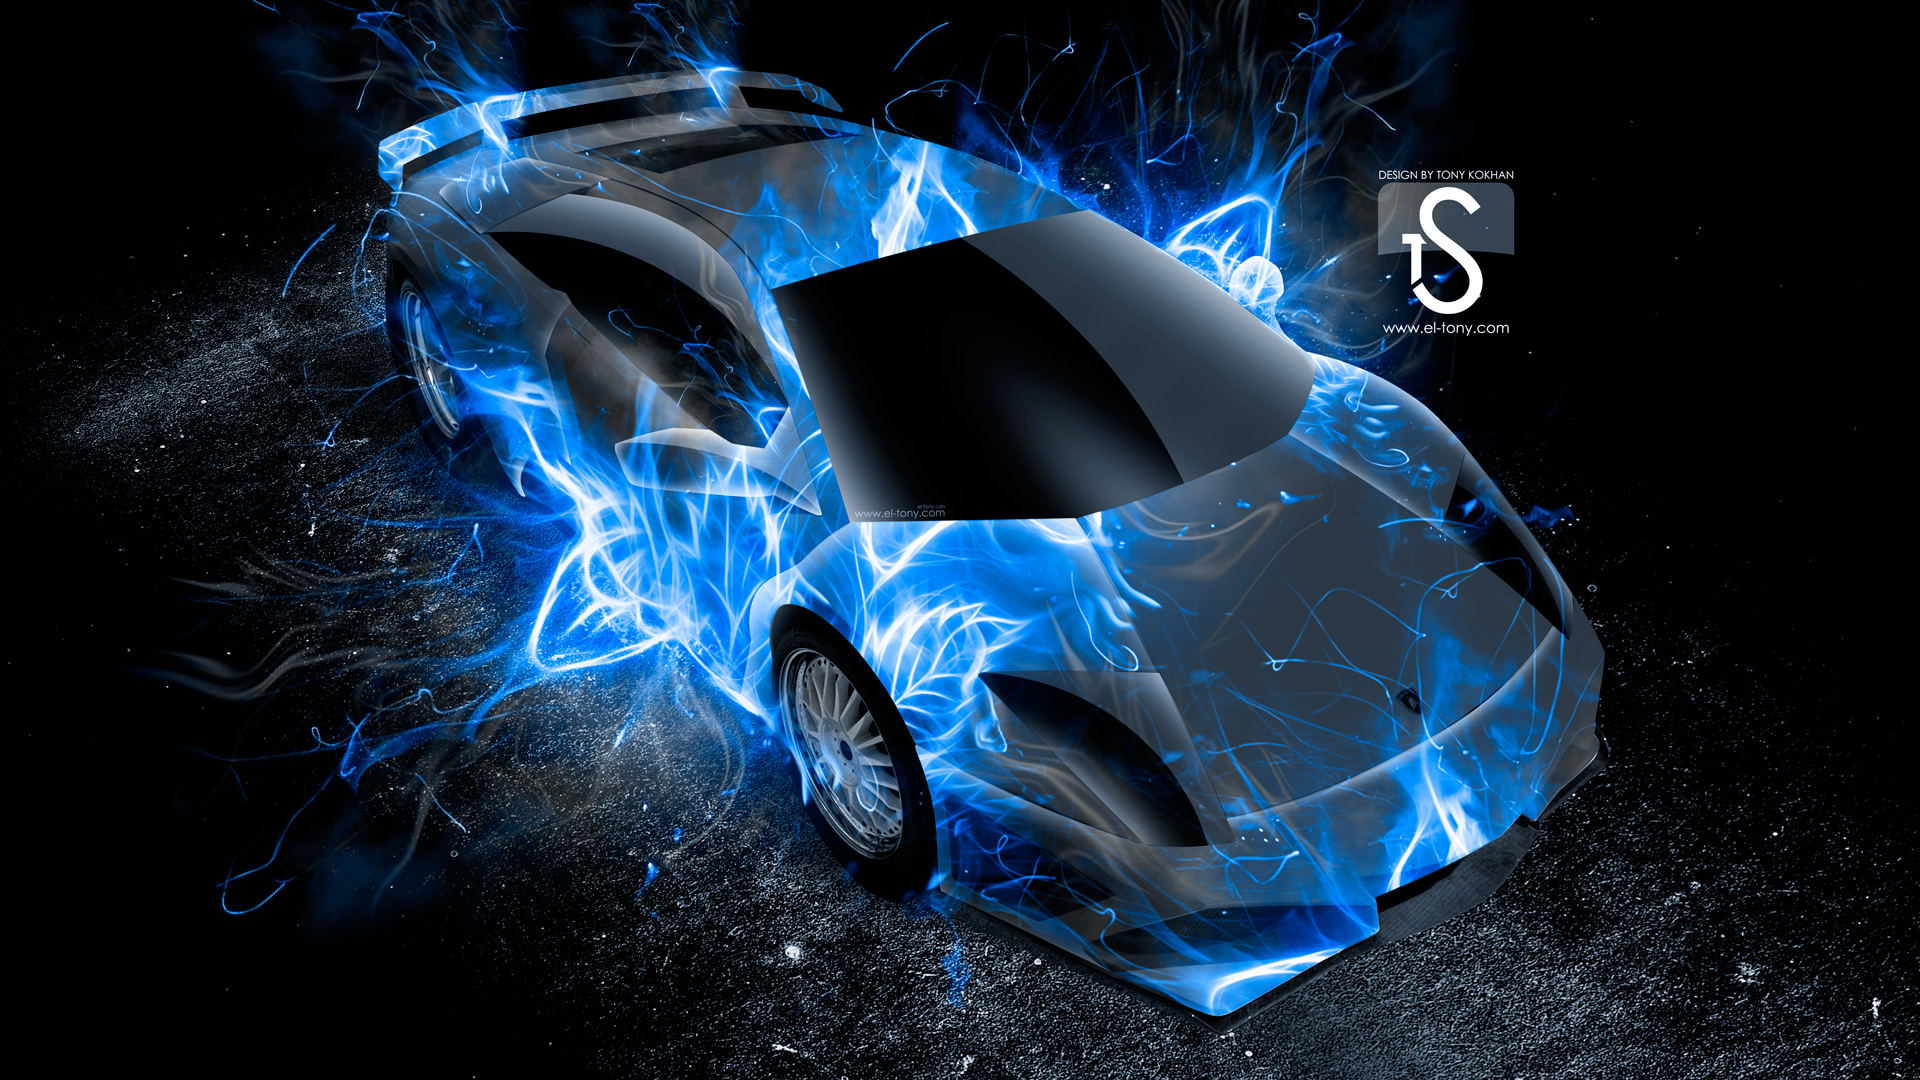 Blue Fire Wallpaper Hd By Bsodiii Dxji Pictures to pin on 1920x1080